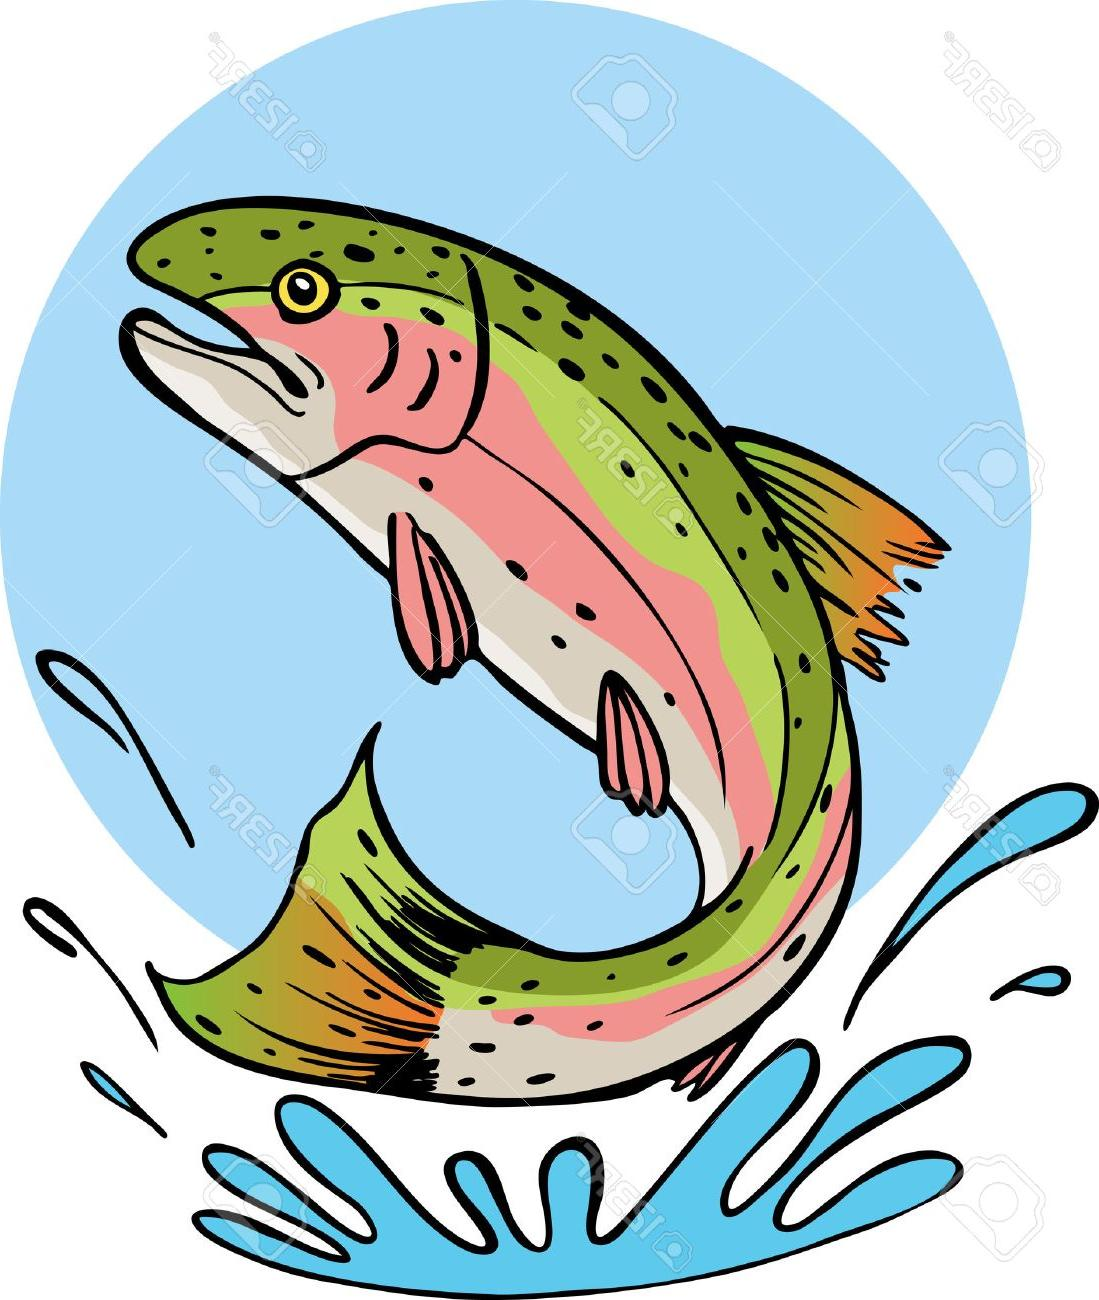 Trout clipart graphic freeuse download Top Trout Clip Art Vector Pictures » Free Vector Art, Images ... graphic freeuse download